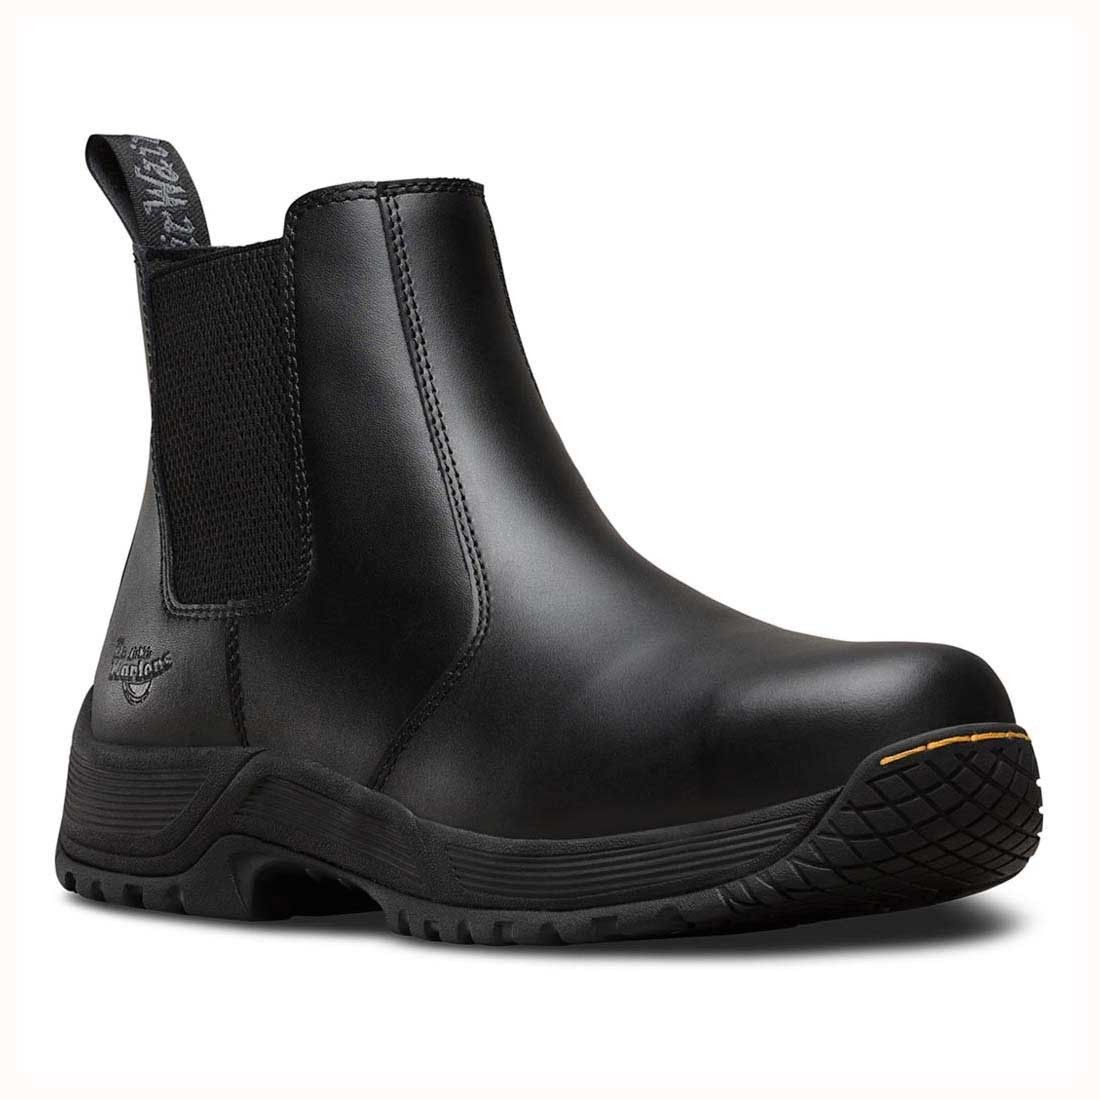 Dr Martens Drakelow S1P SRC Black Leather Unisex Safety